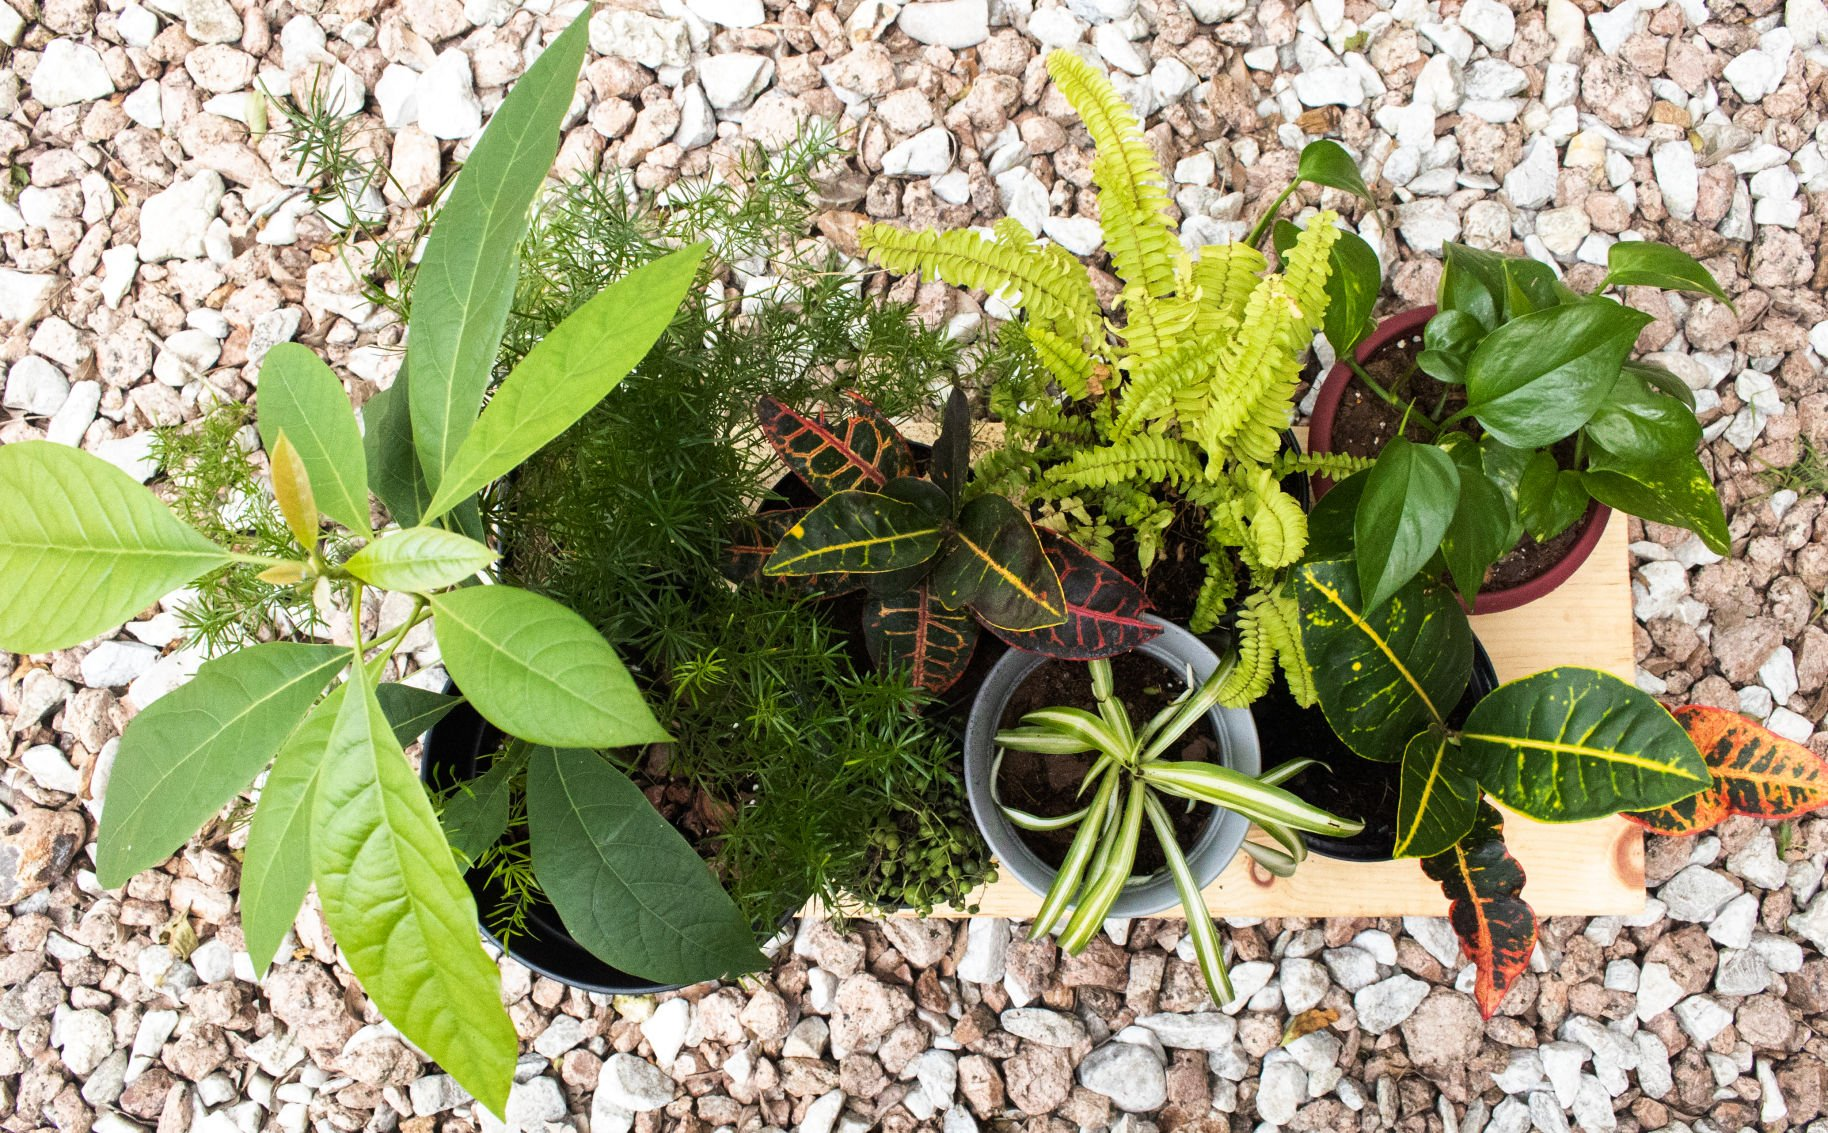 A gardening guide for new plant parents